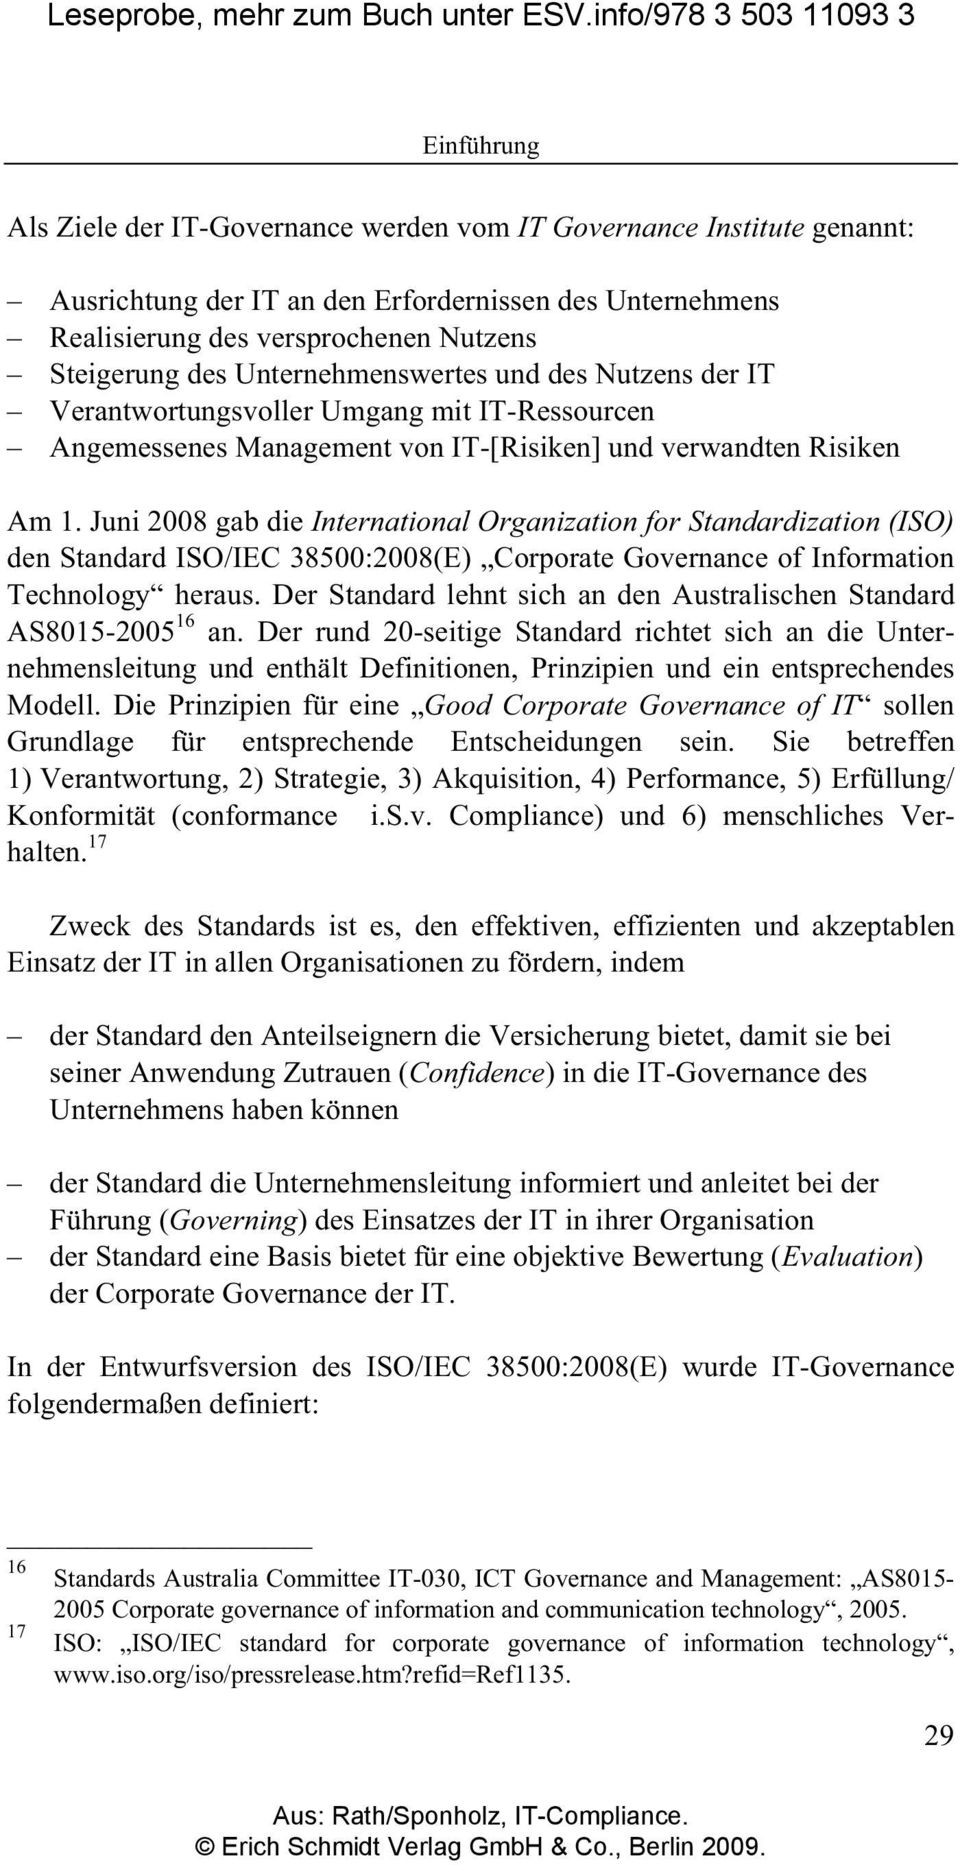 Juni 2008 gab die International Organization for Standardization (ISO) den Standard ISO/IEC 38500:2008(E) Corporate Governance of Information Technology heraus.